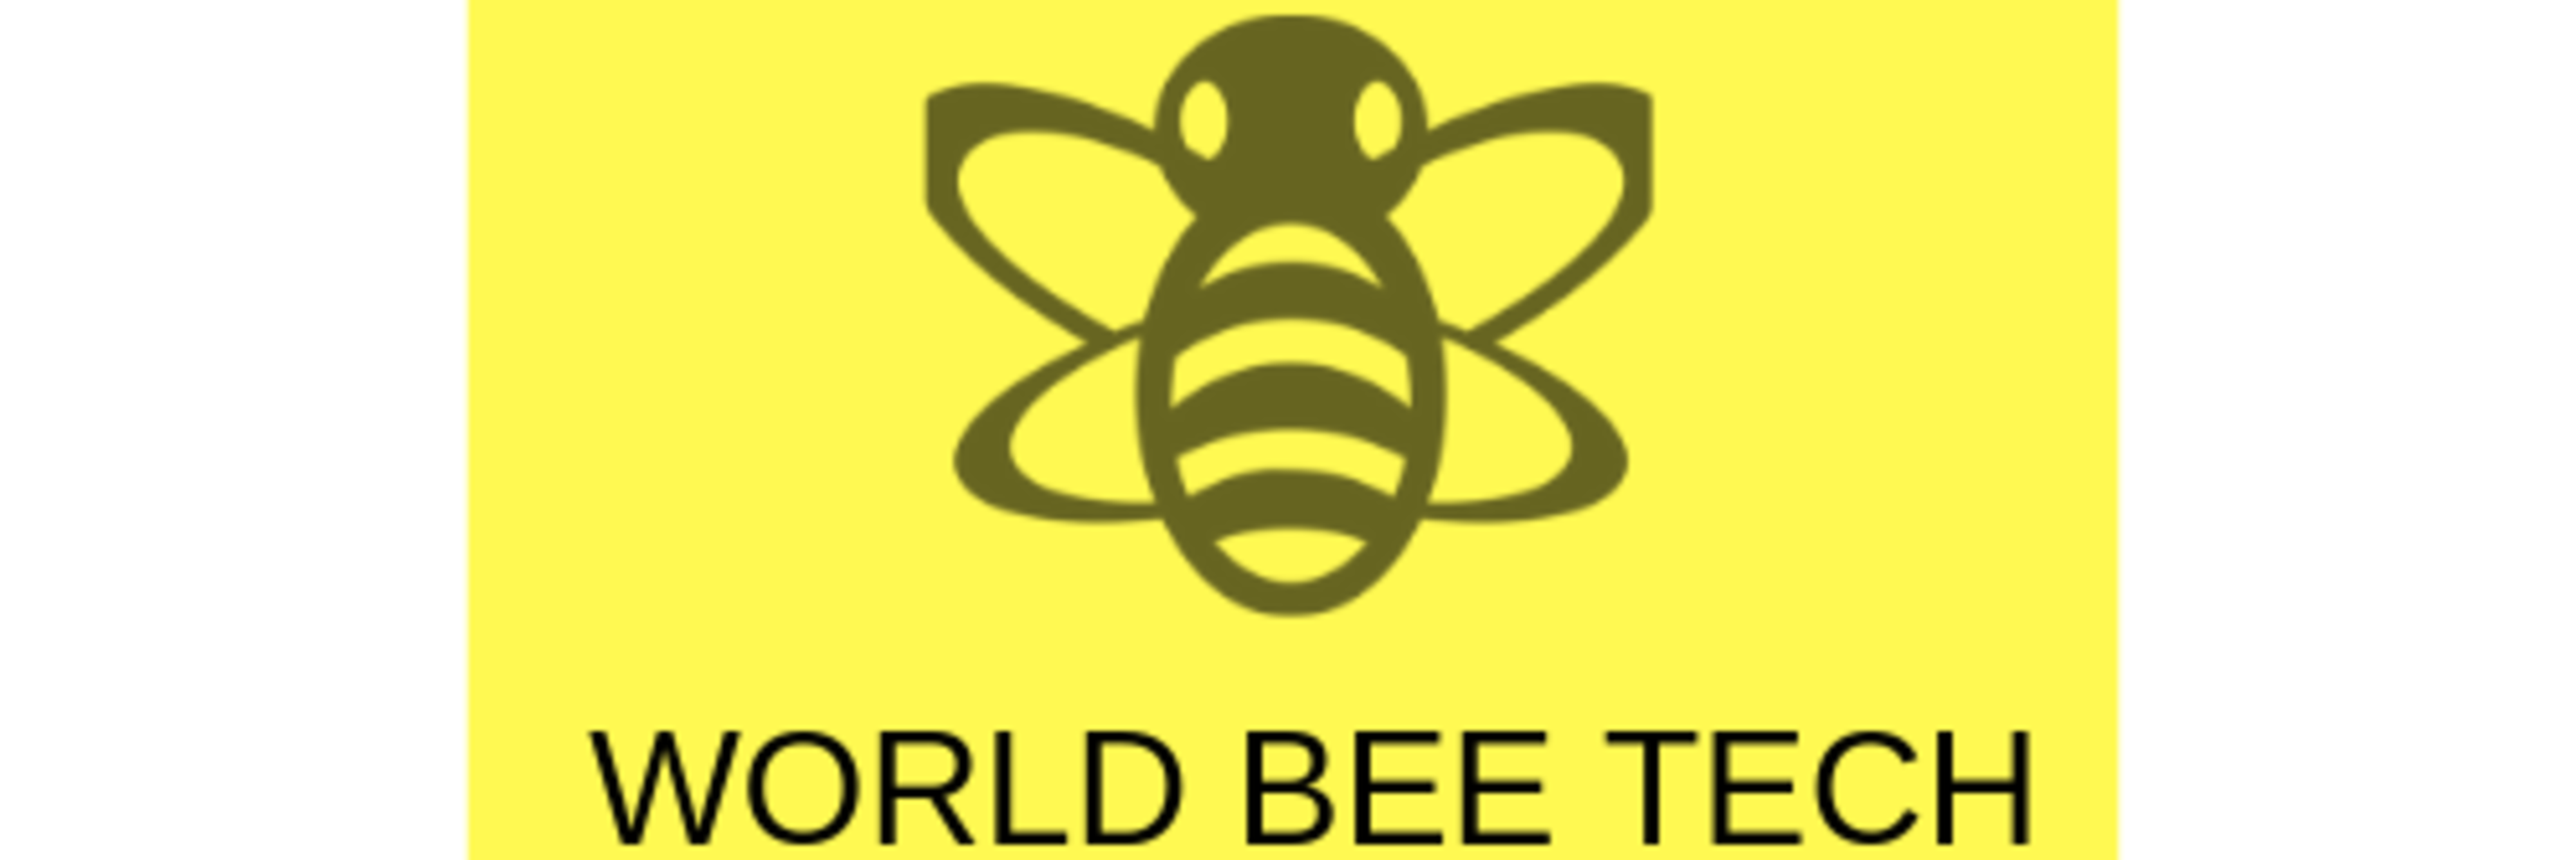 World Bee Tech